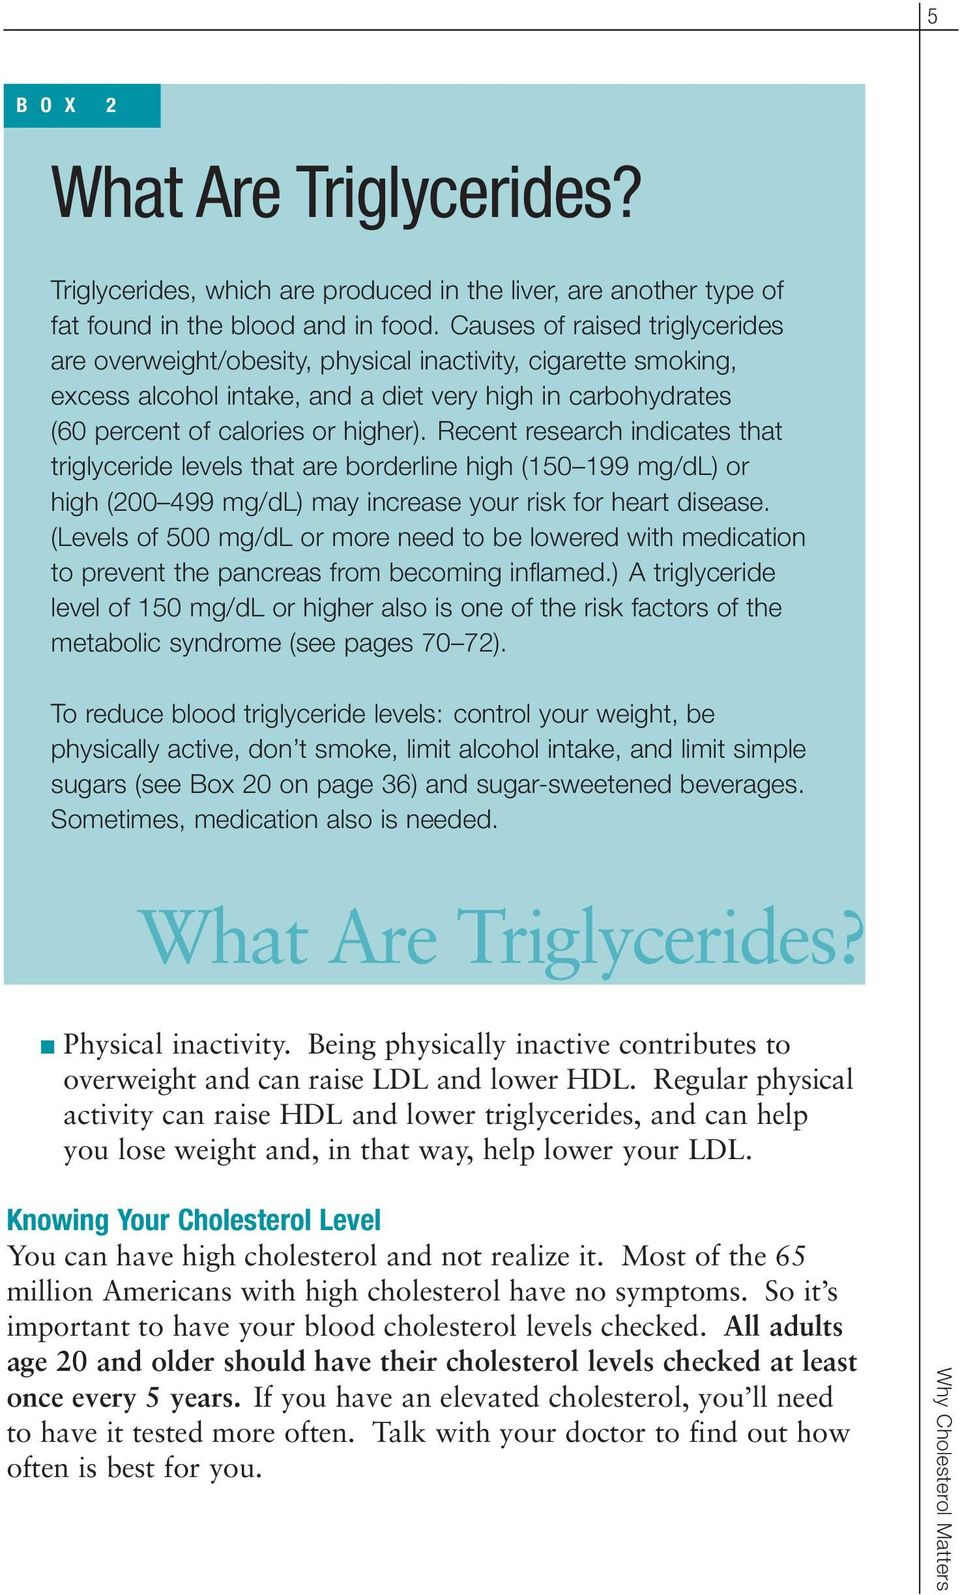 Recent research indicates that triglyceride levels that are borderline high (150 199 mg/dl) or high (200 499 mg/dl) may increase your risk for heart disease.